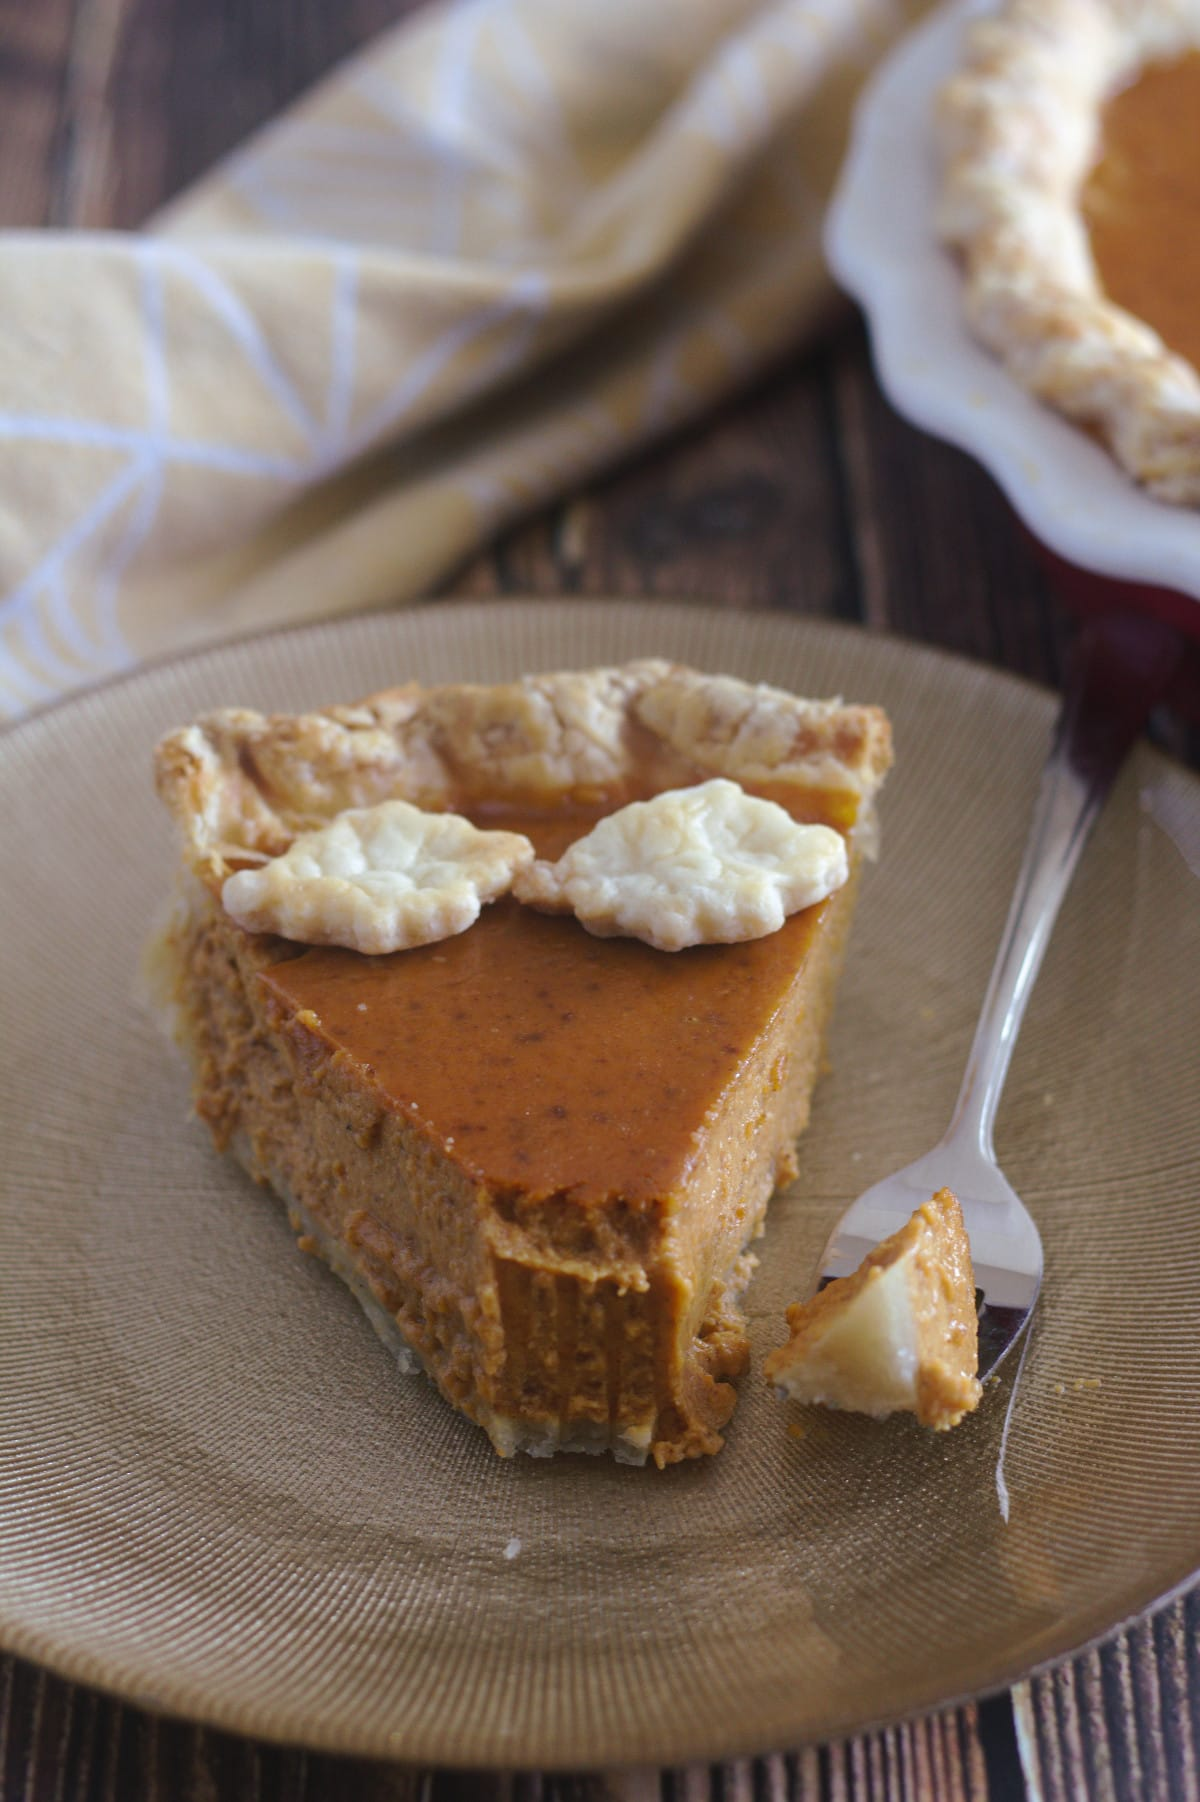 A slice of pie with a fork beside it.  The slice of pie is missing a chunk and it is on the fork.